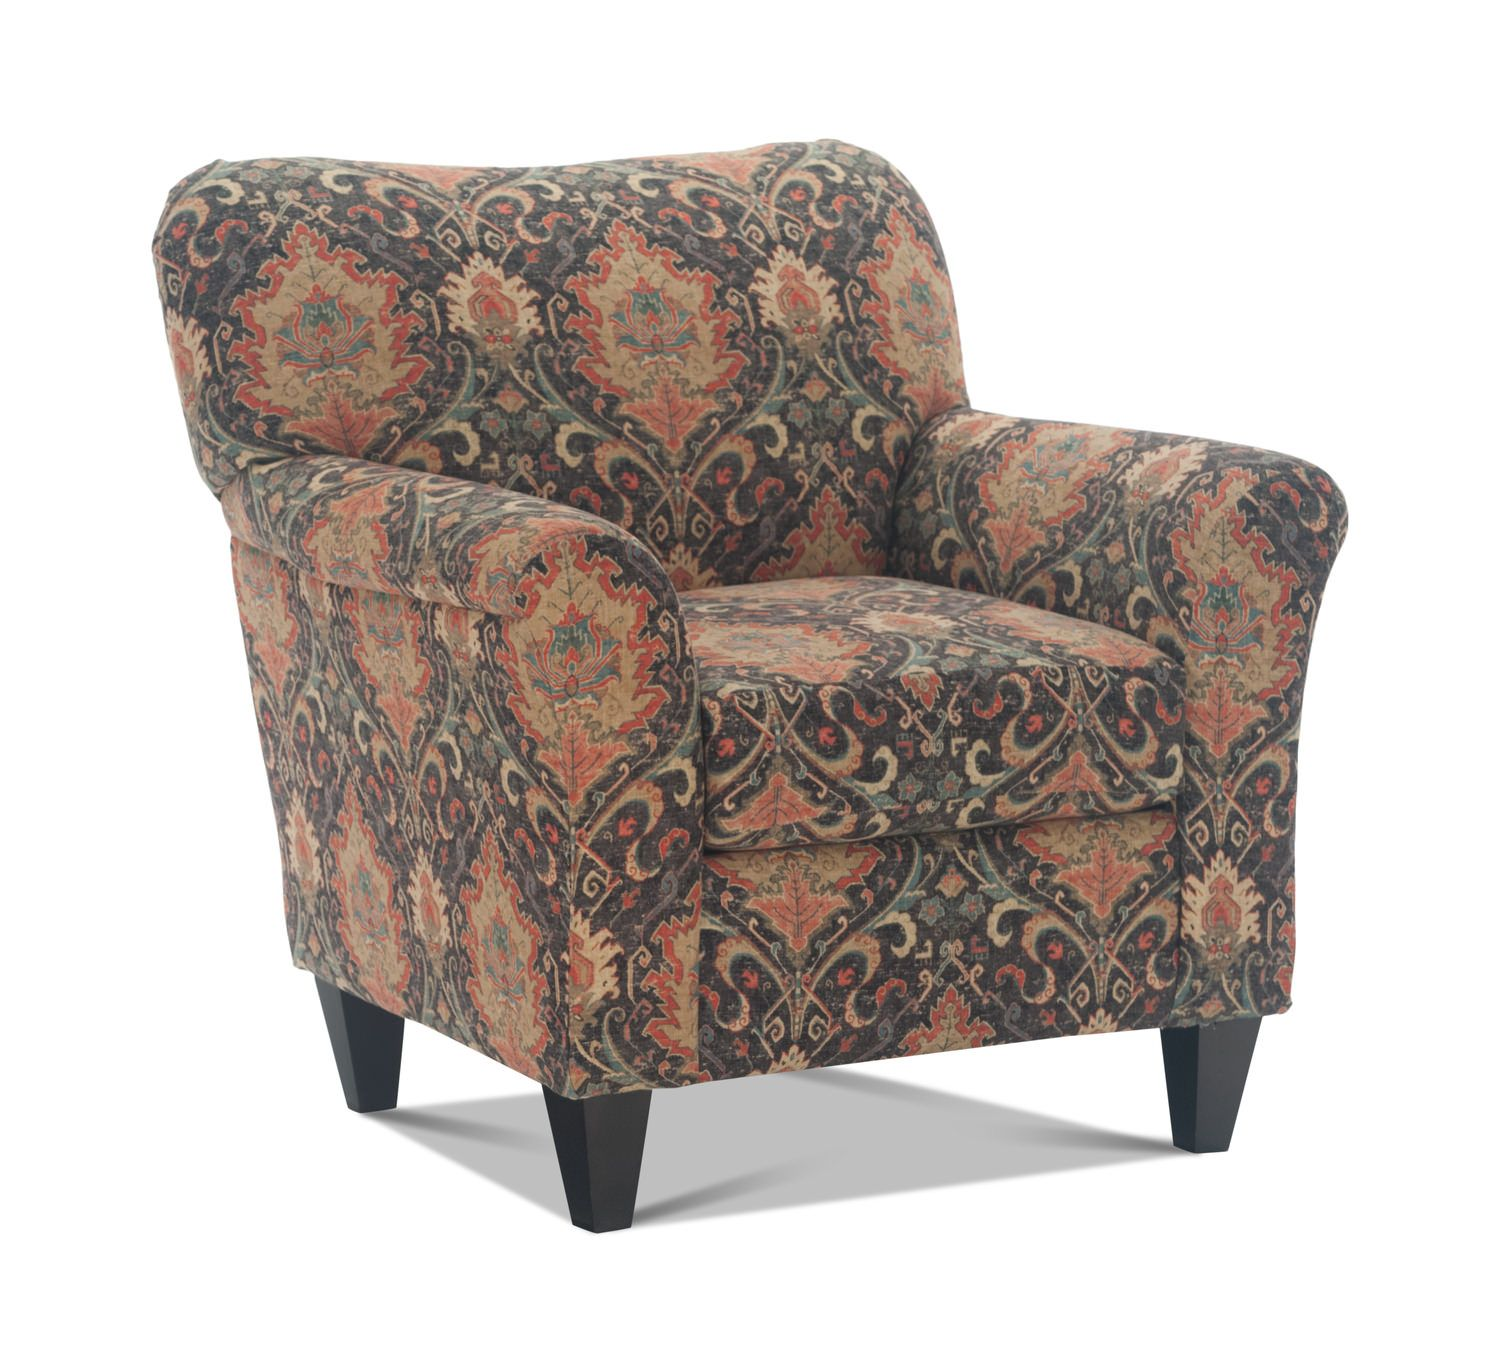 Stupendous Fairly Accent Chair Products I Love Accent Chairs Chair Pabps2019 Chair Design Images Pabps2019Com